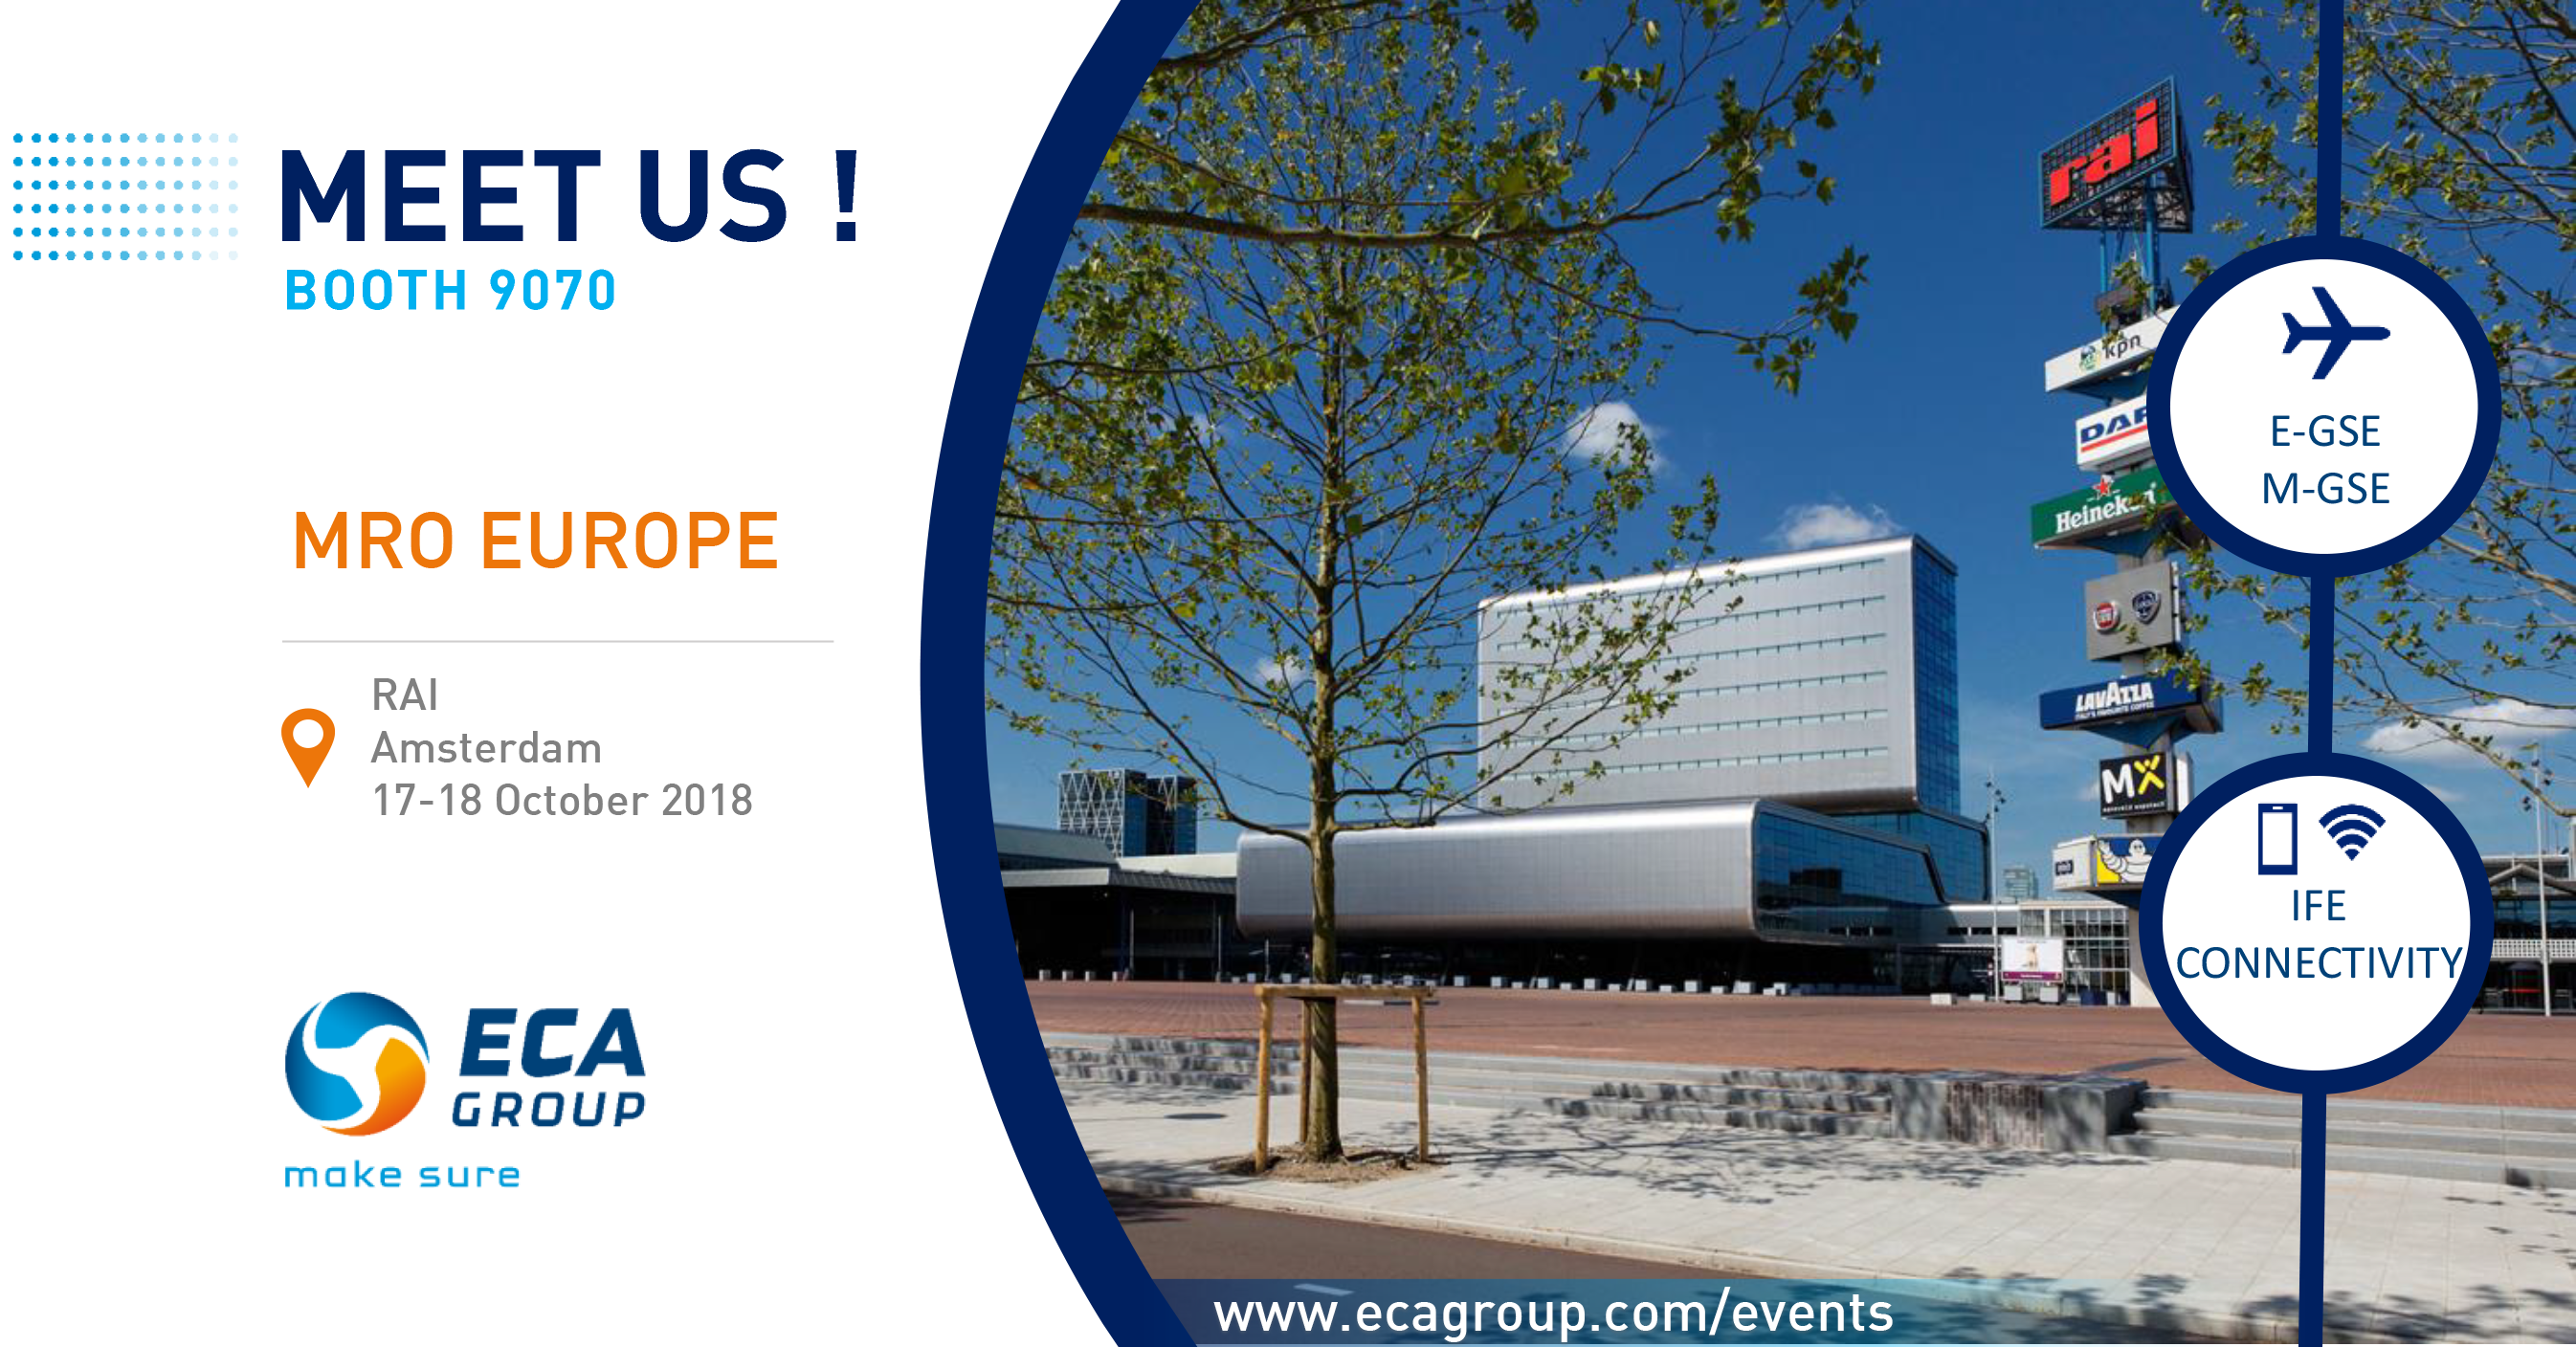 ECA Group at MRO EUROPE 2018